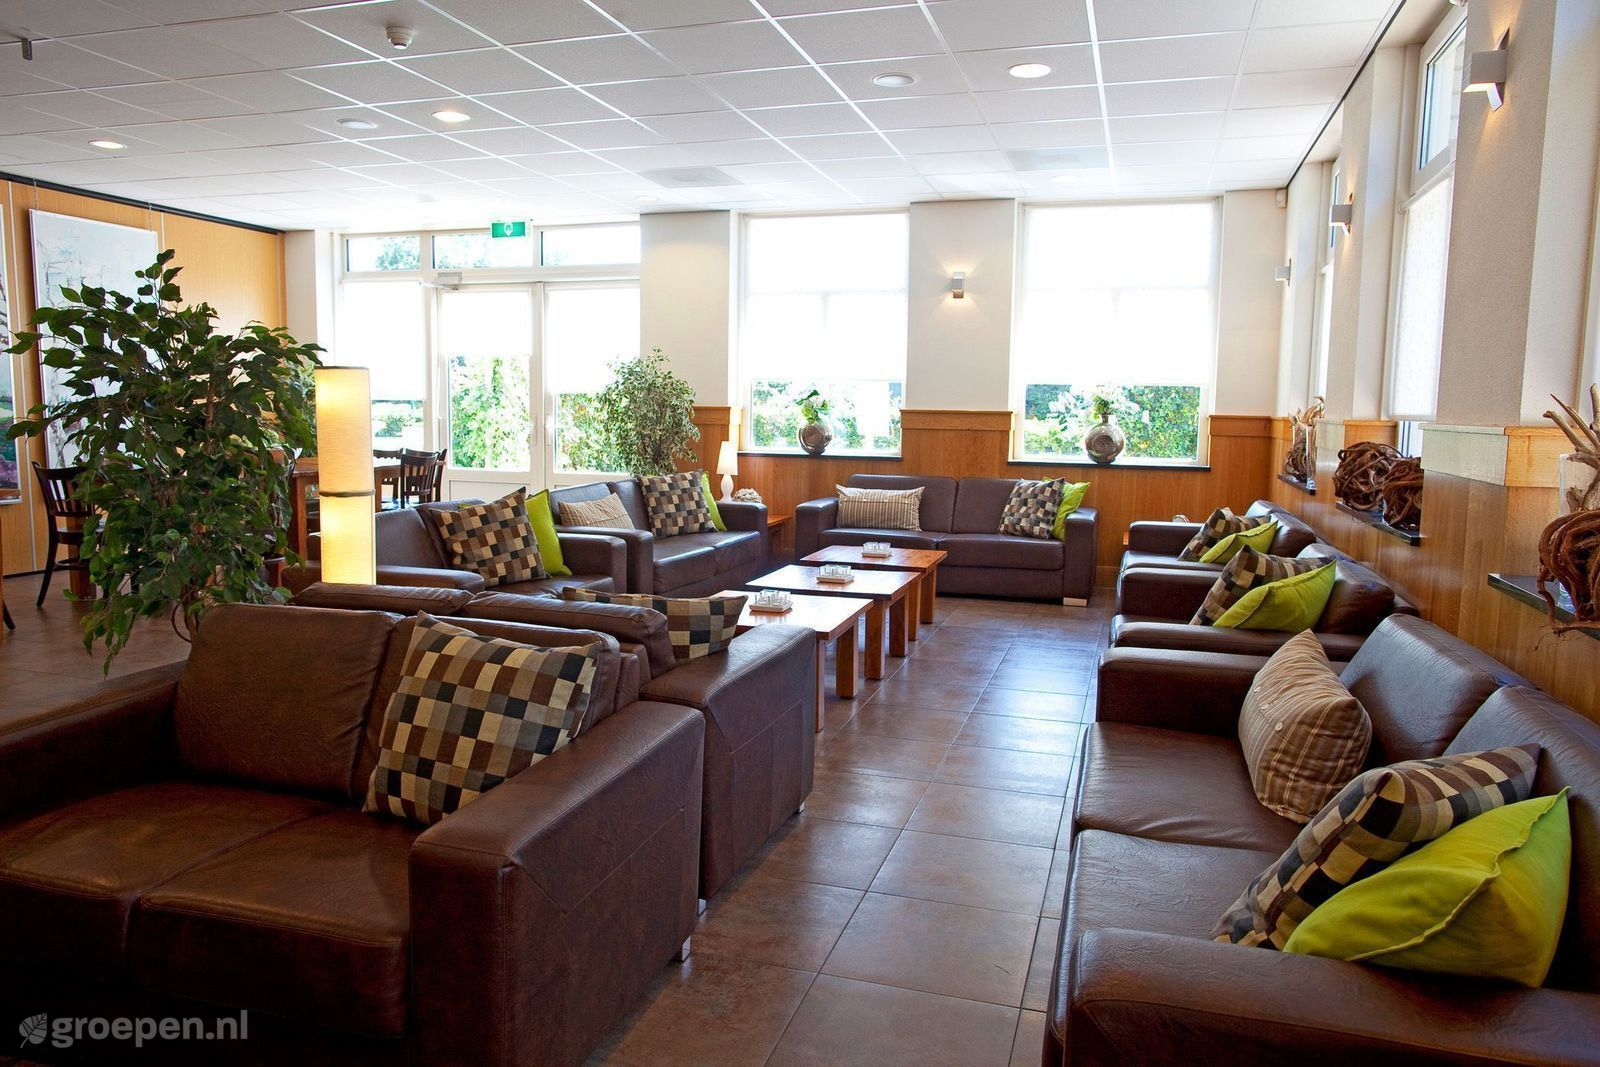 Group accommodation Schaijk